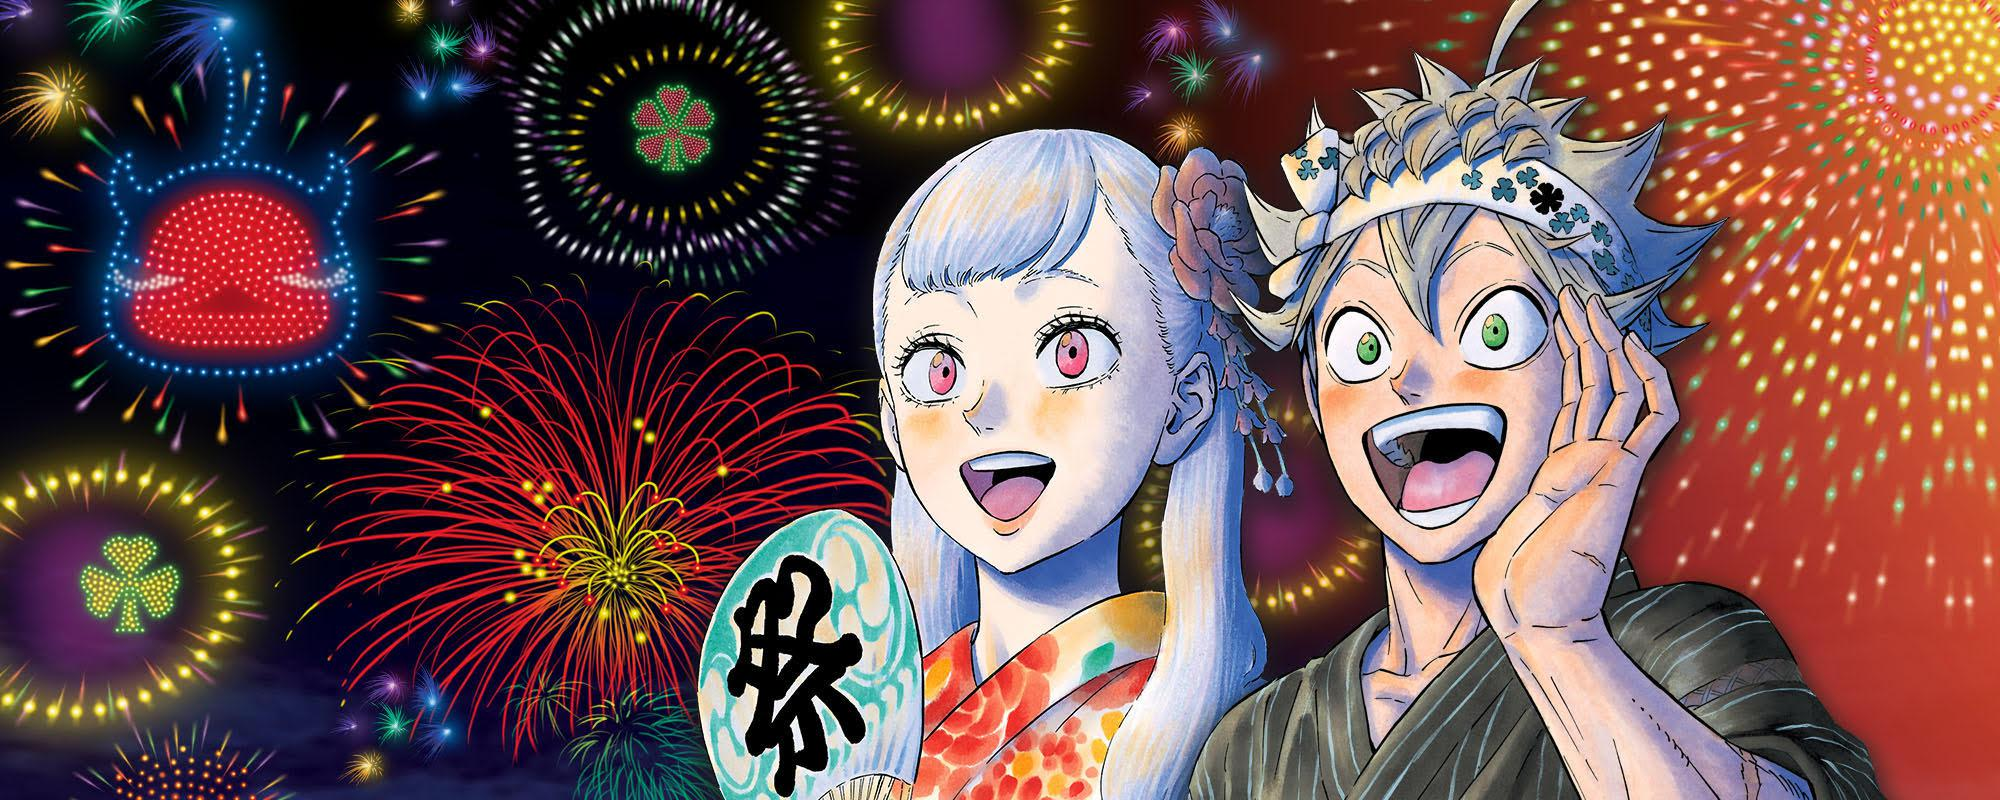 Black Clover Chapter 270 Read Online for Free and Legally